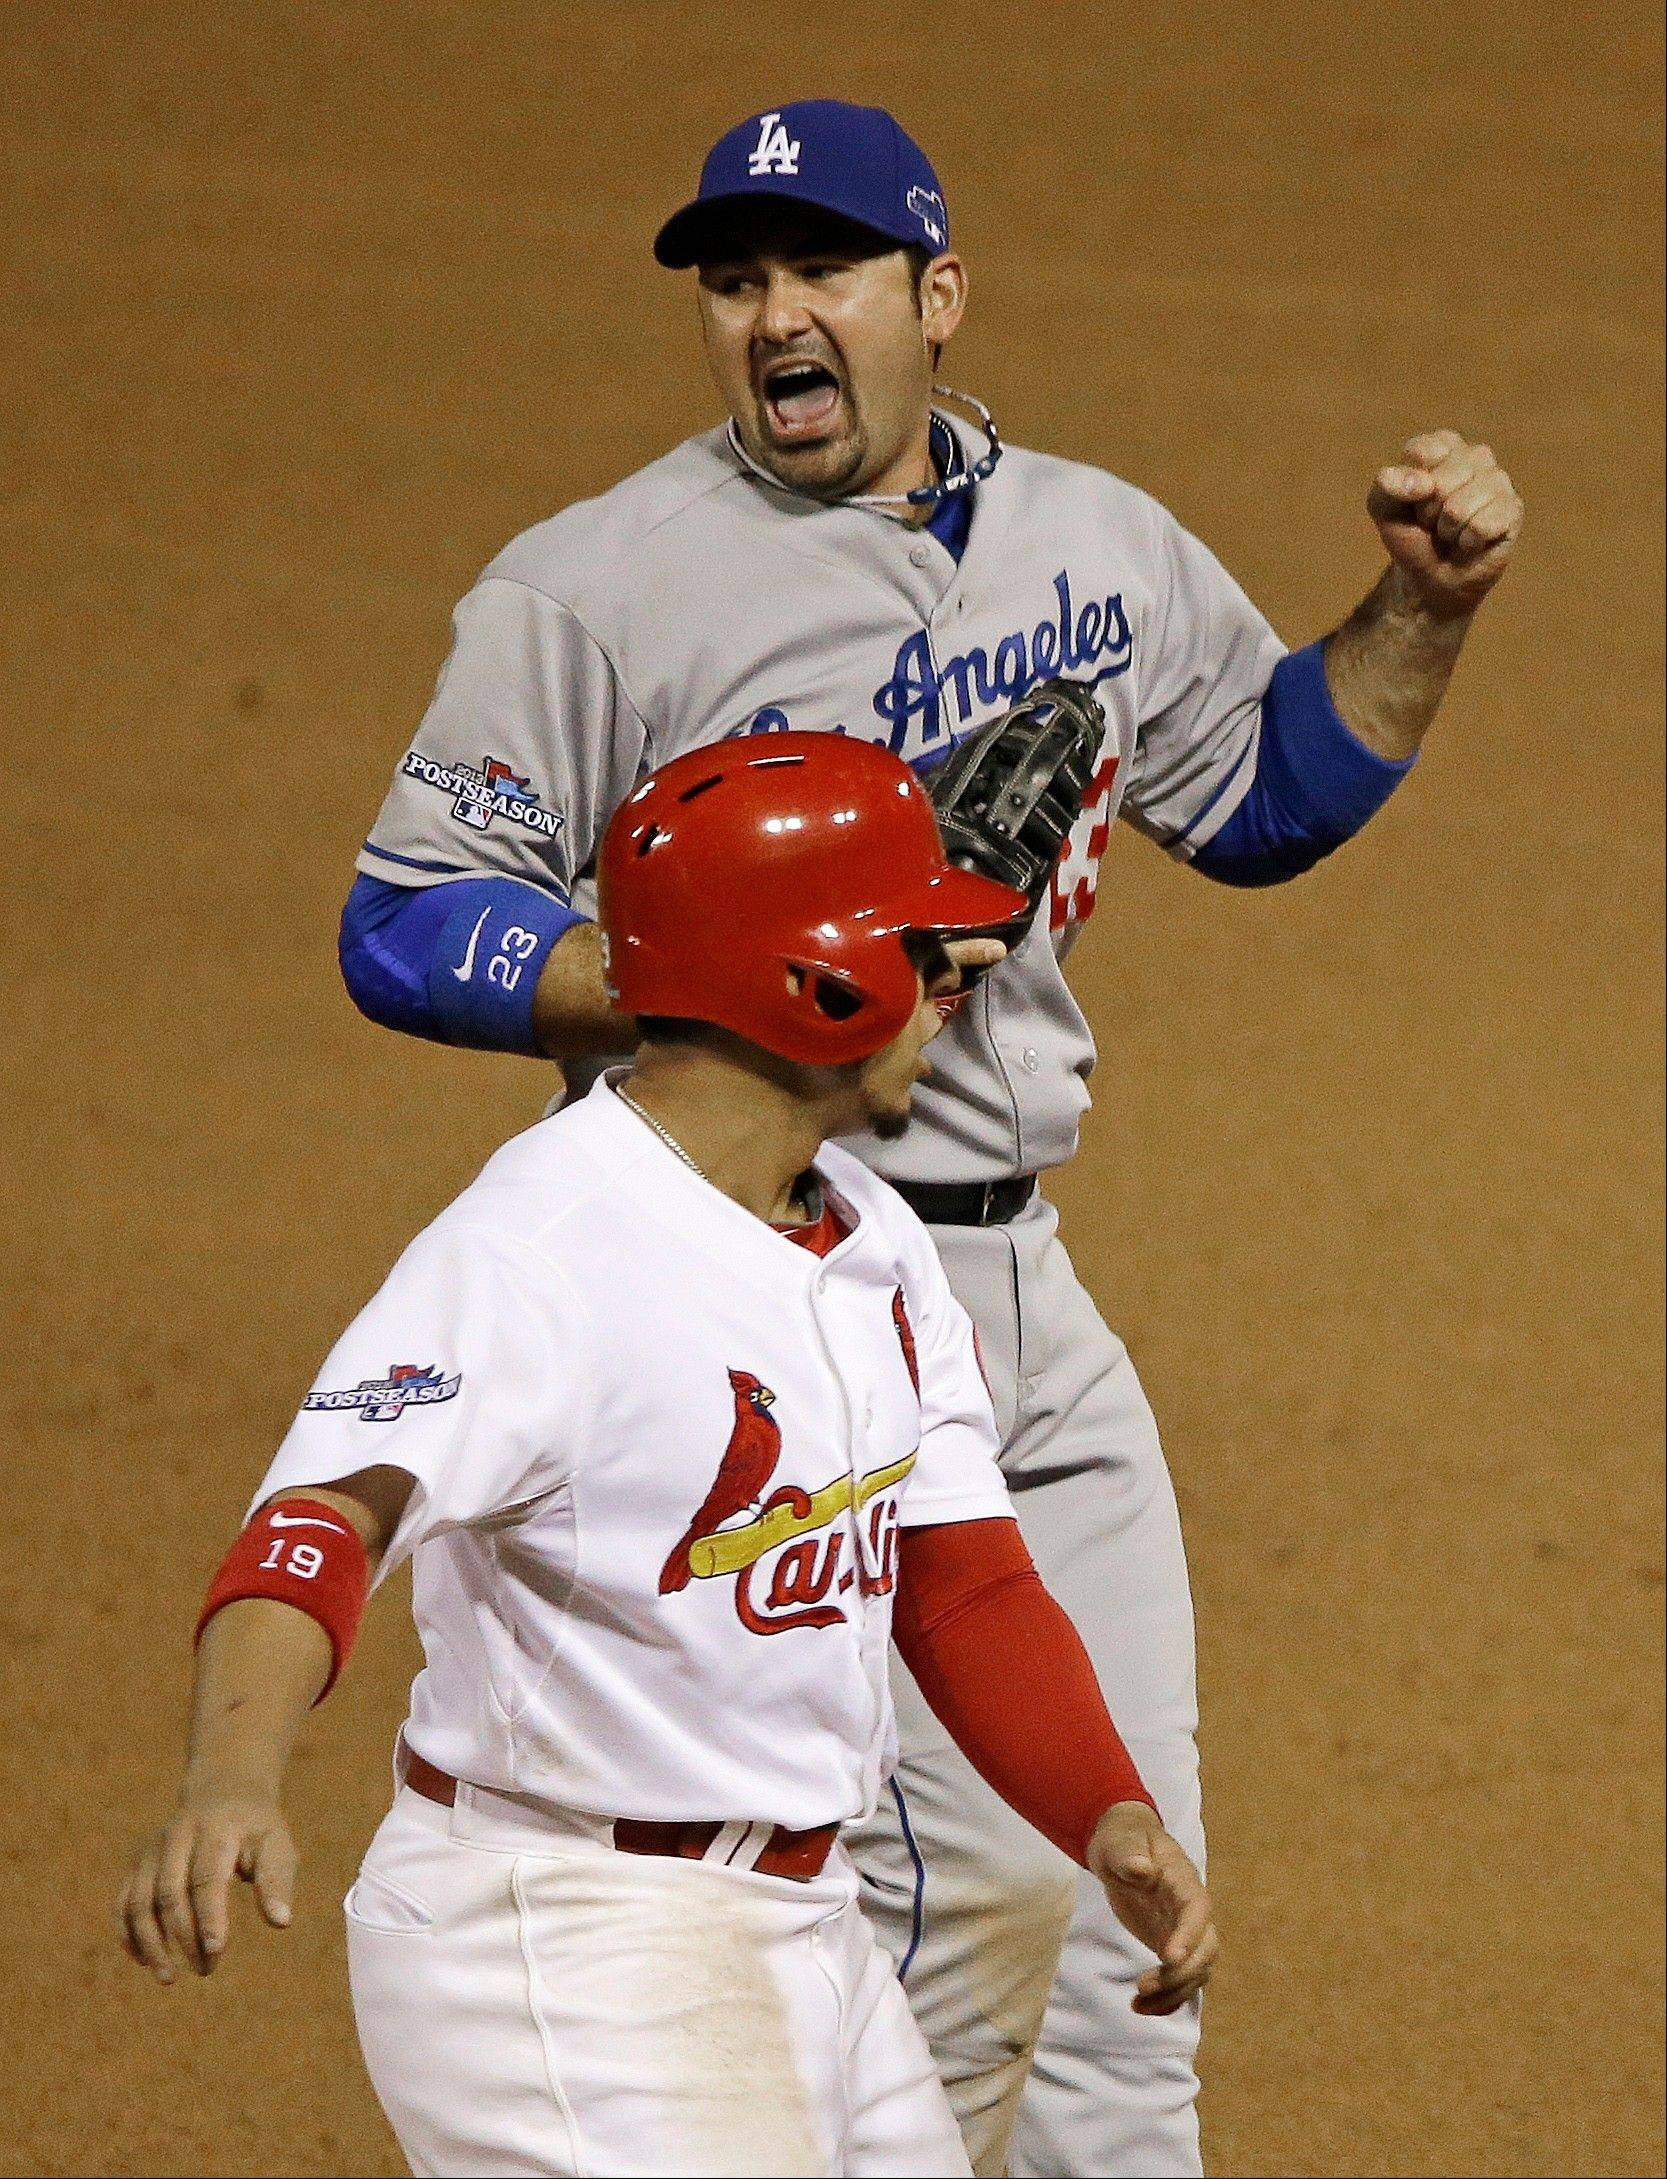 Dodgers first baseman Adrian Gonzalez reacts to doubling off the Cardinals' Jon Jay at first during the seventh inning Friday in St. Louis.